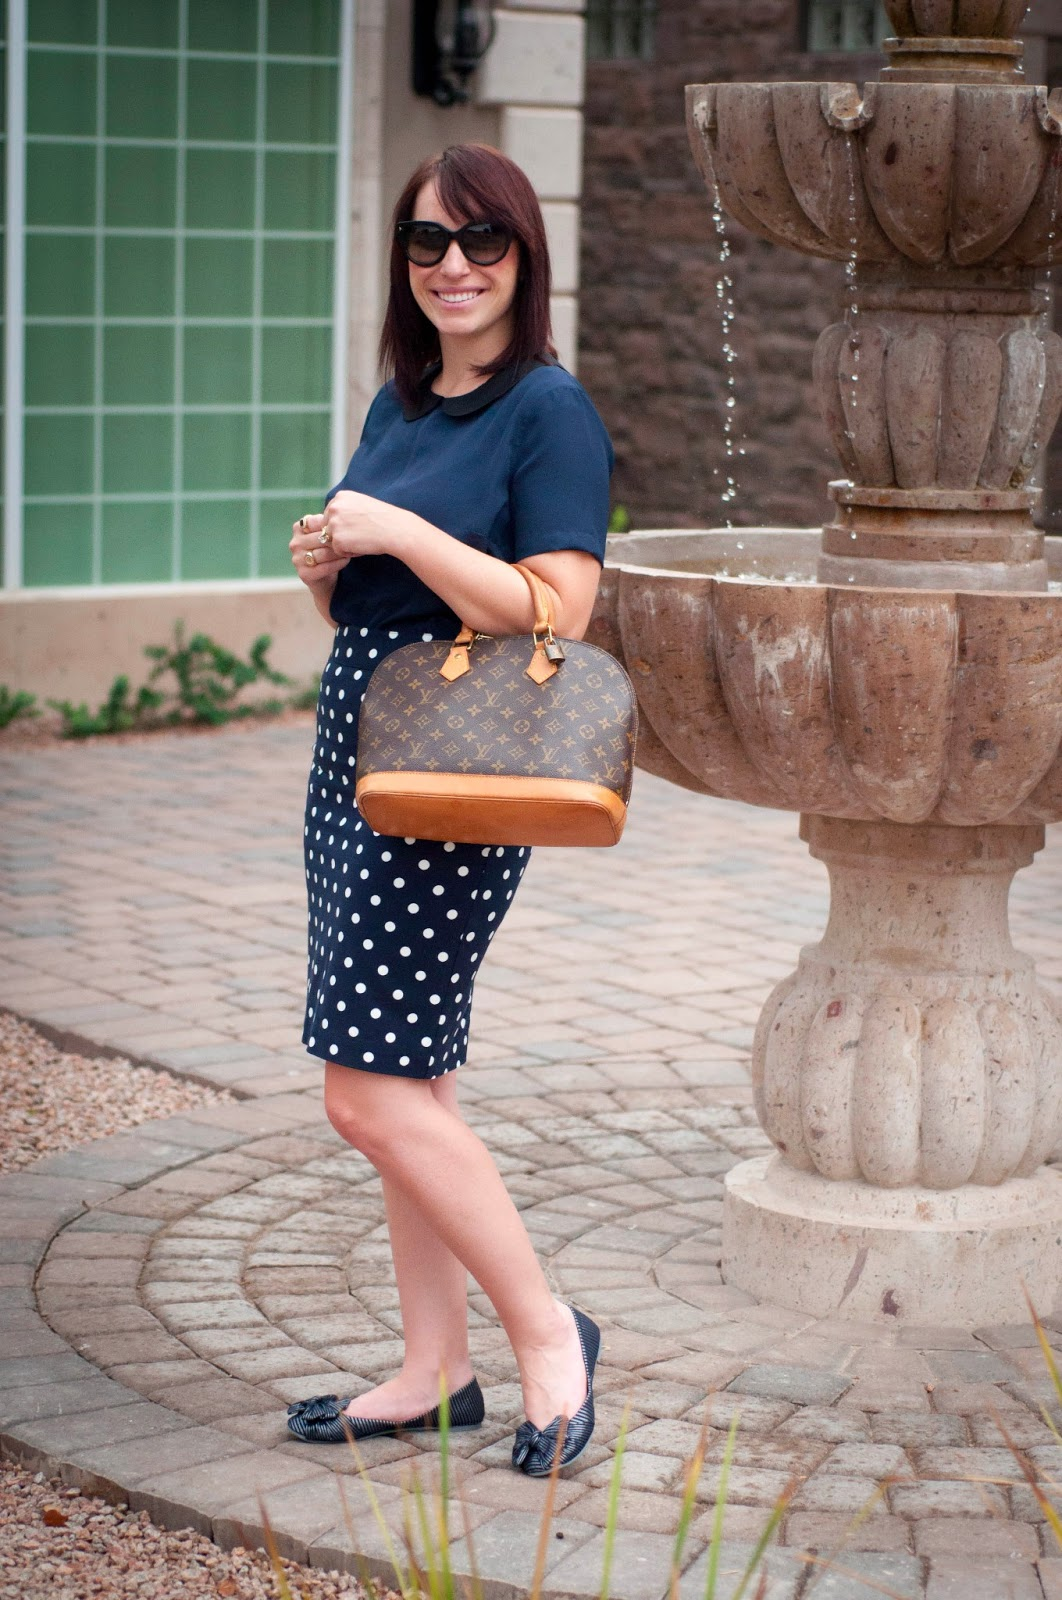 target style, prada sunglasses, blow flats, ootd, style blog, fashion blog, polka dot skirt, louis vuitton top handle bag